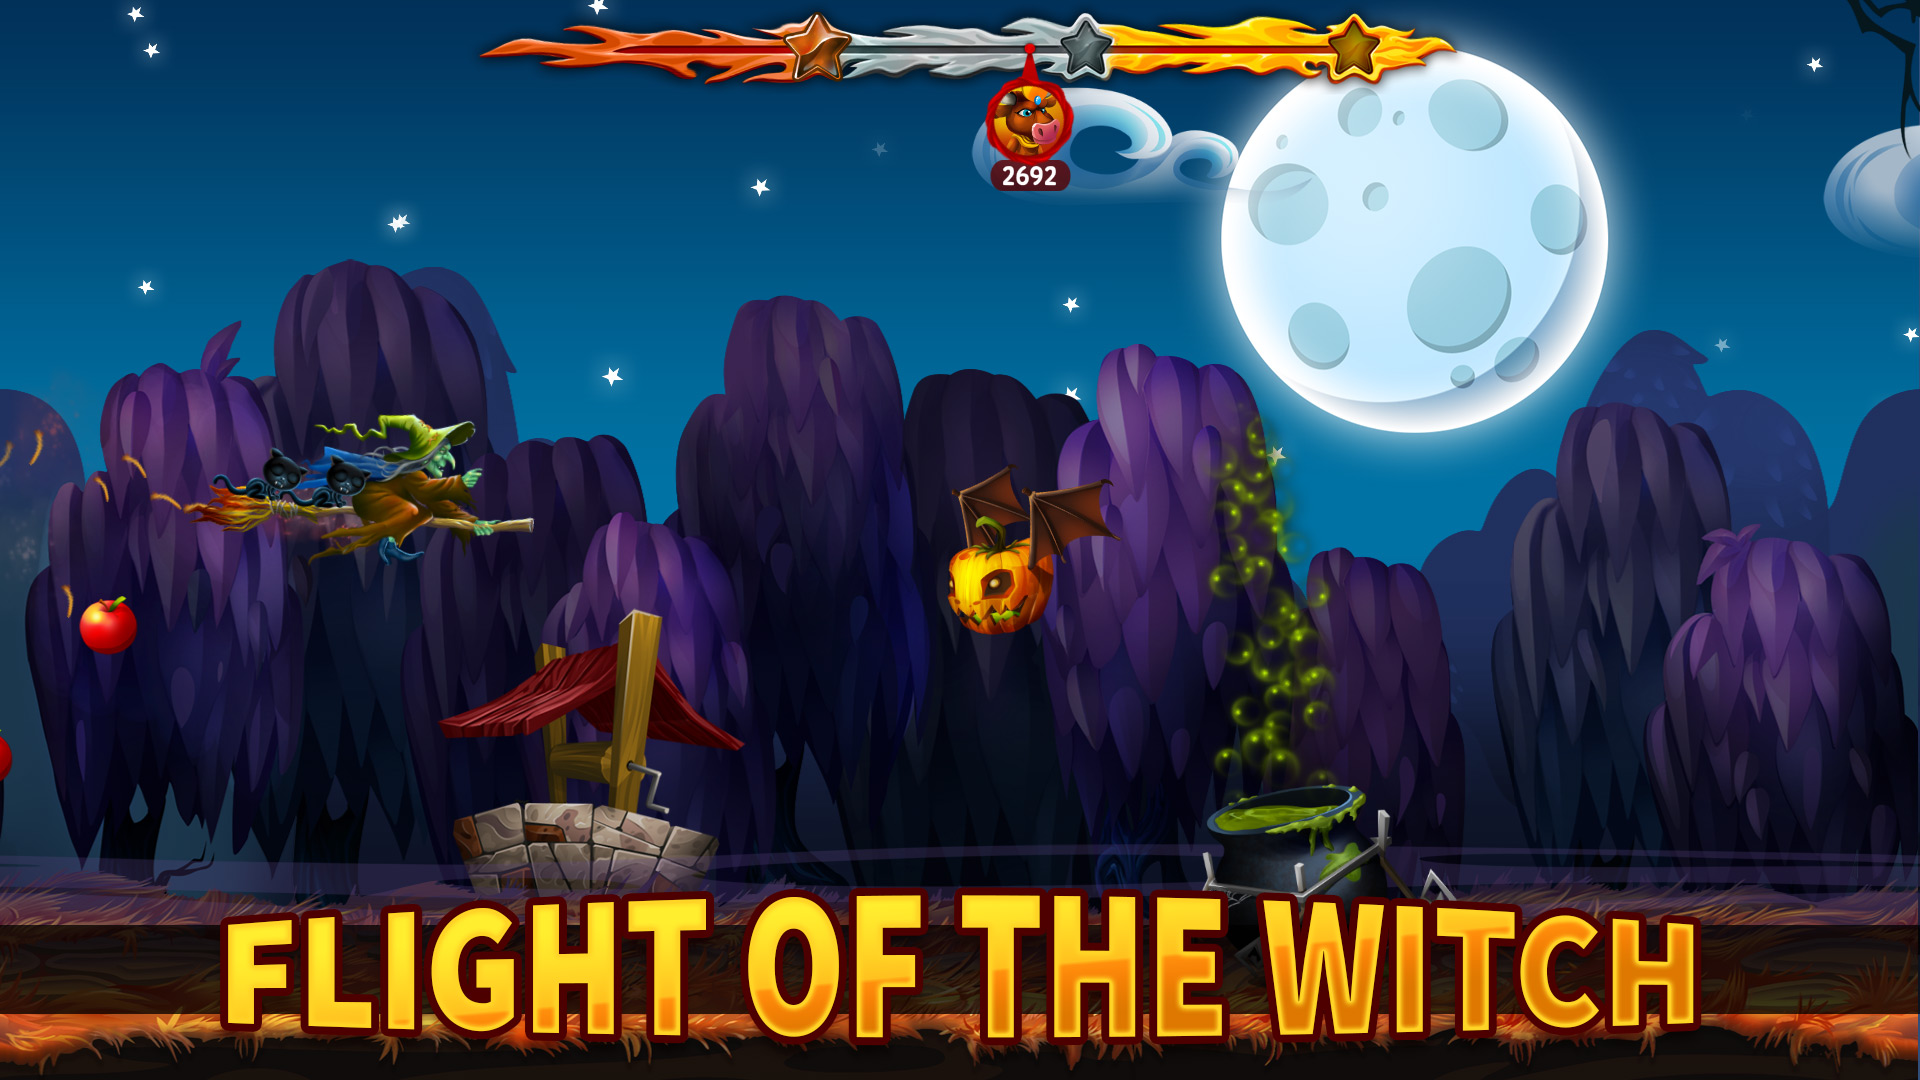 PP_FLIGHT_OF_THE_WITCH